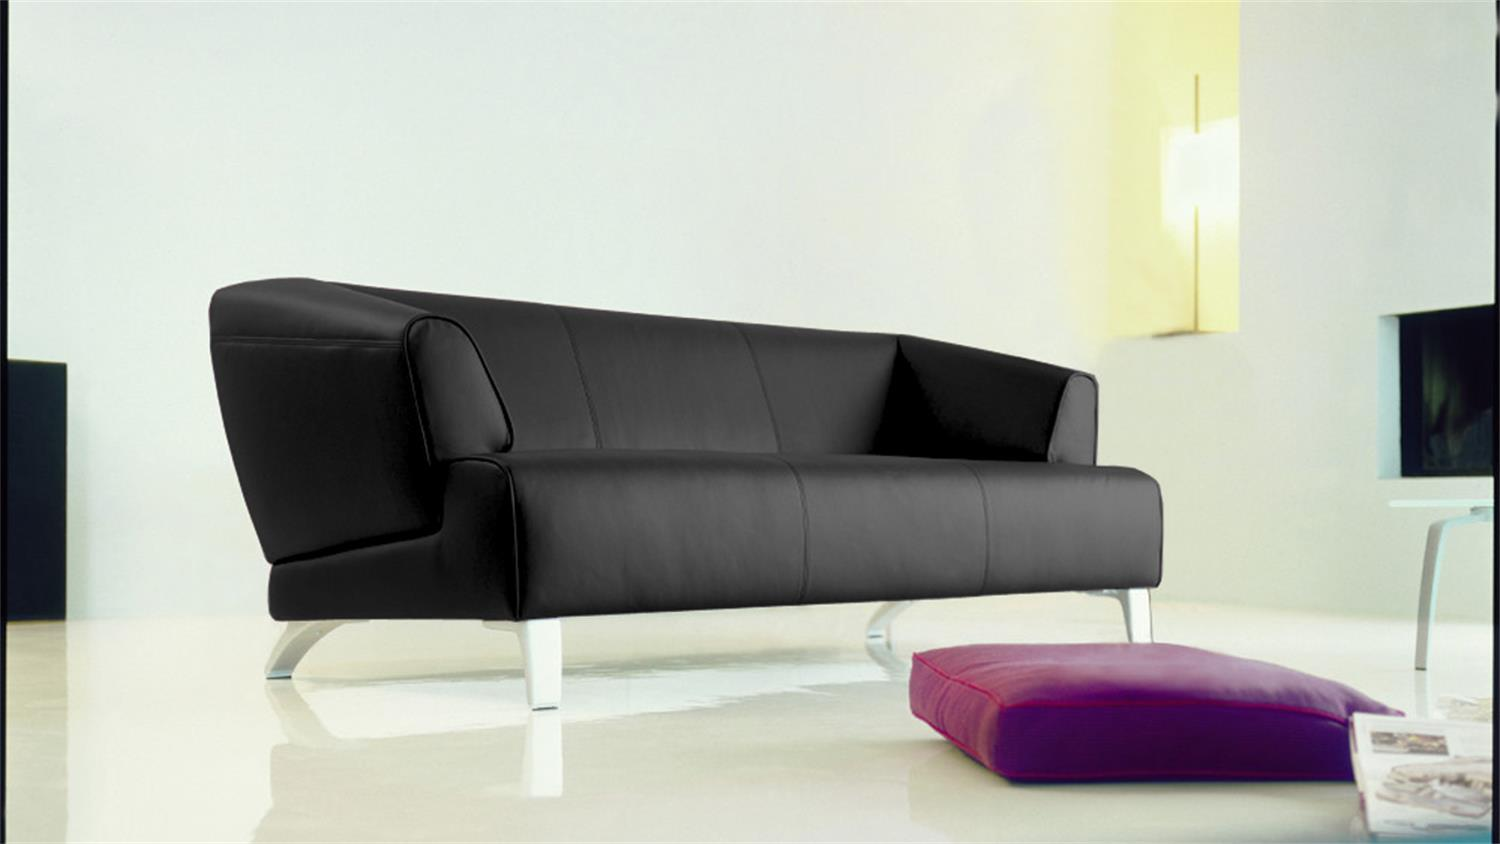 Ledersofa schwarz rolf benz for Sofa benz rolf